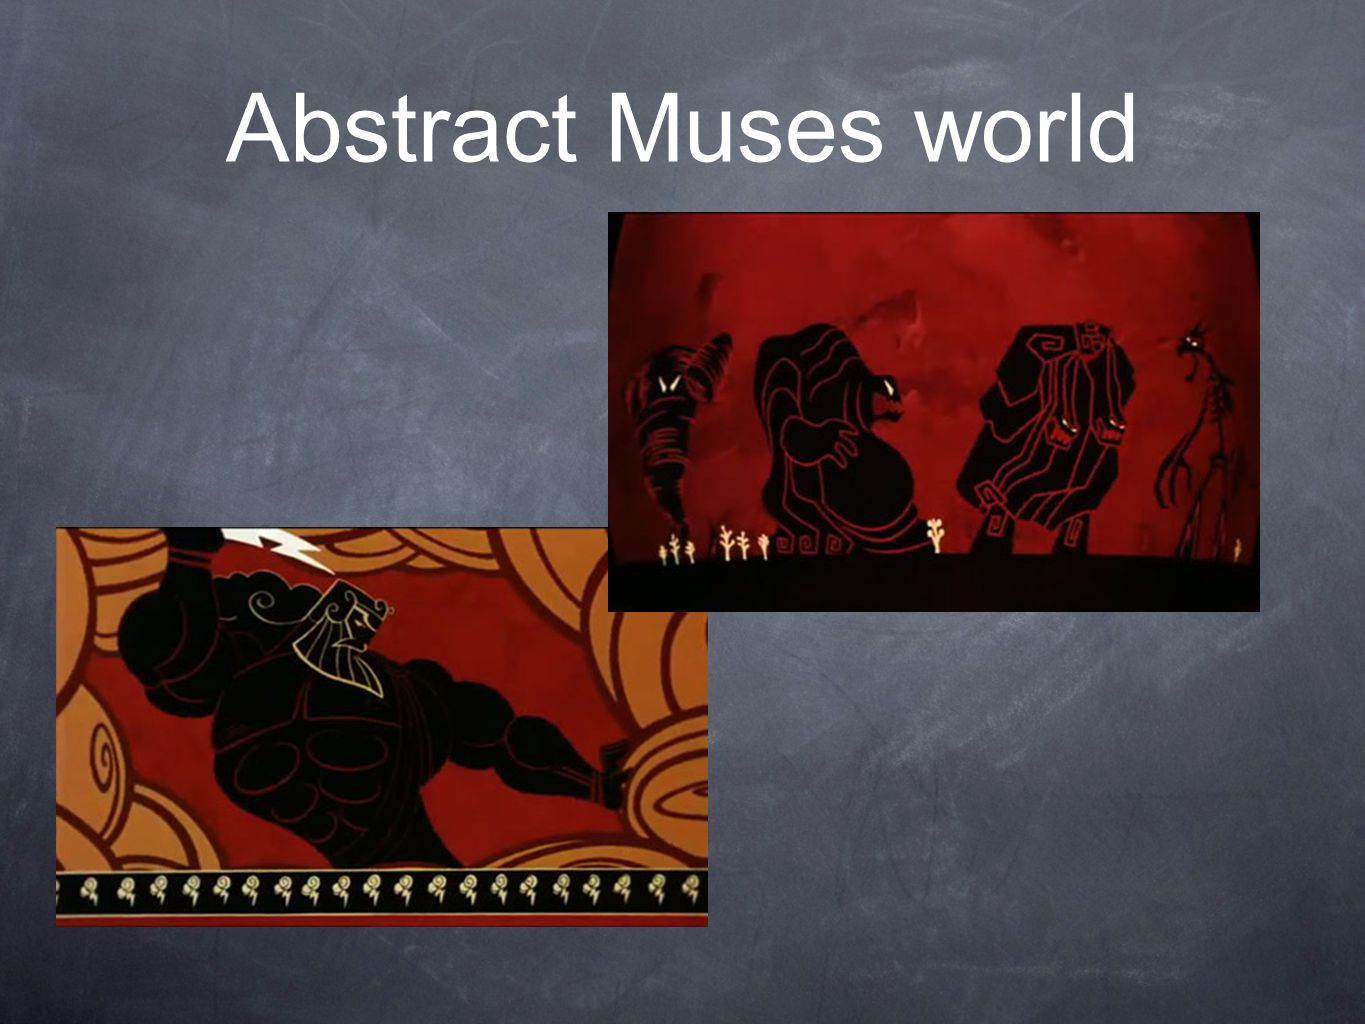 Abstract Muses world